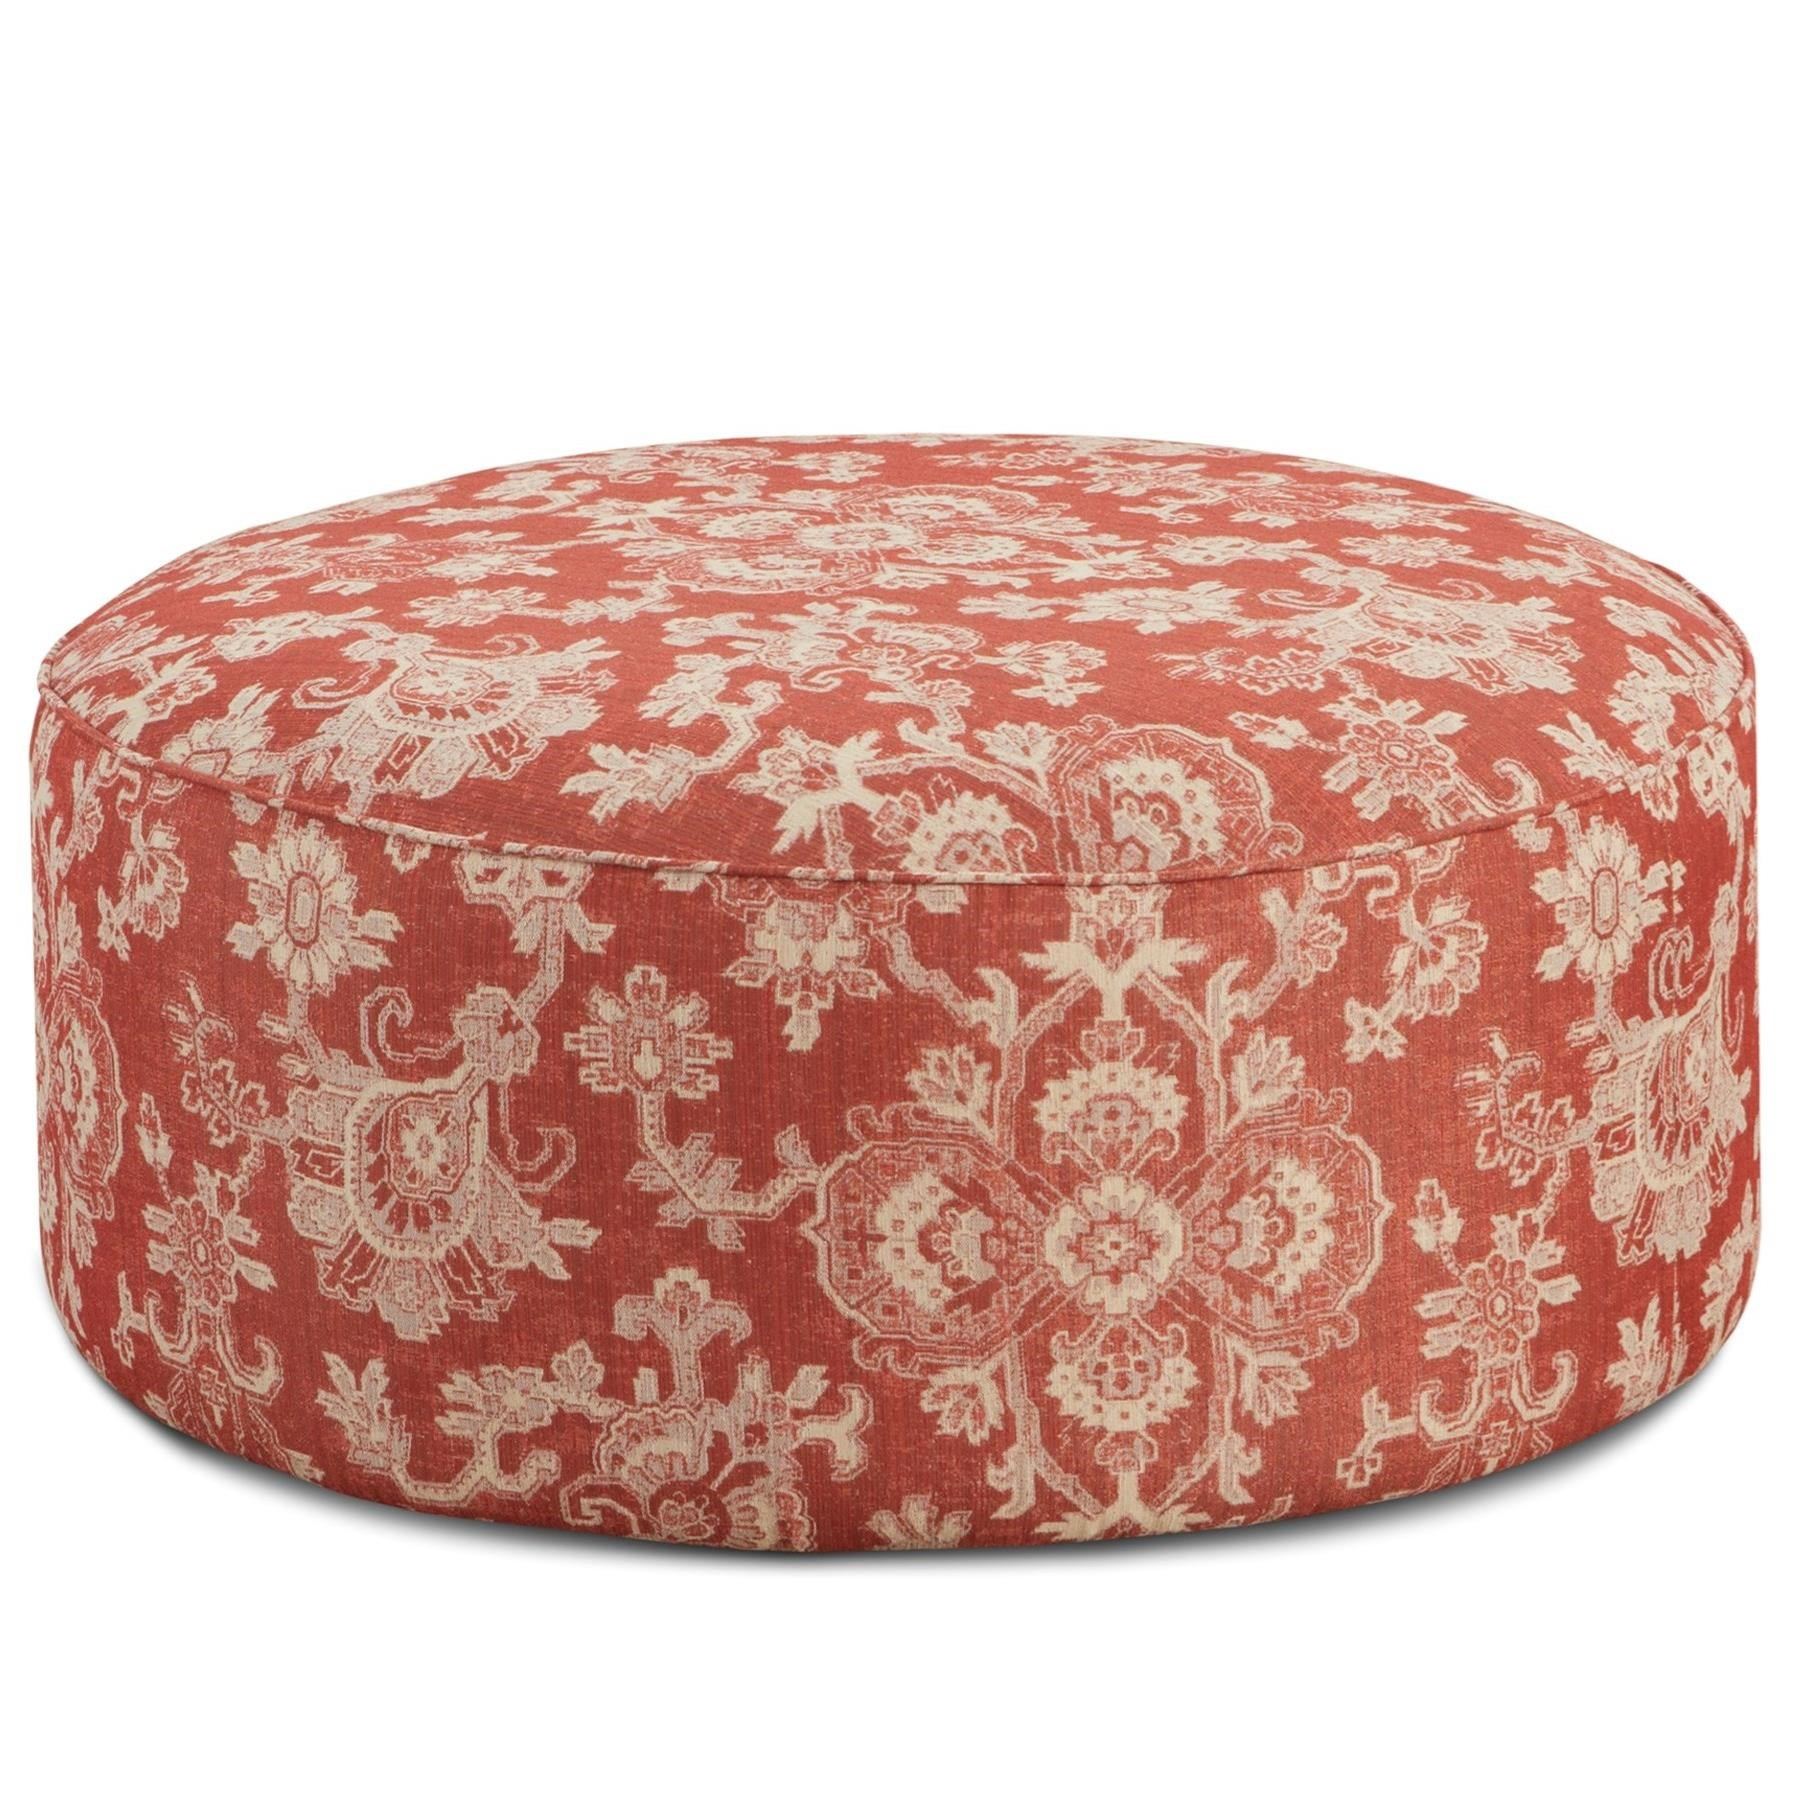 Fusion Furniture 140 Cocktail Ottoman - Item Number: 140Bedoya Pepper